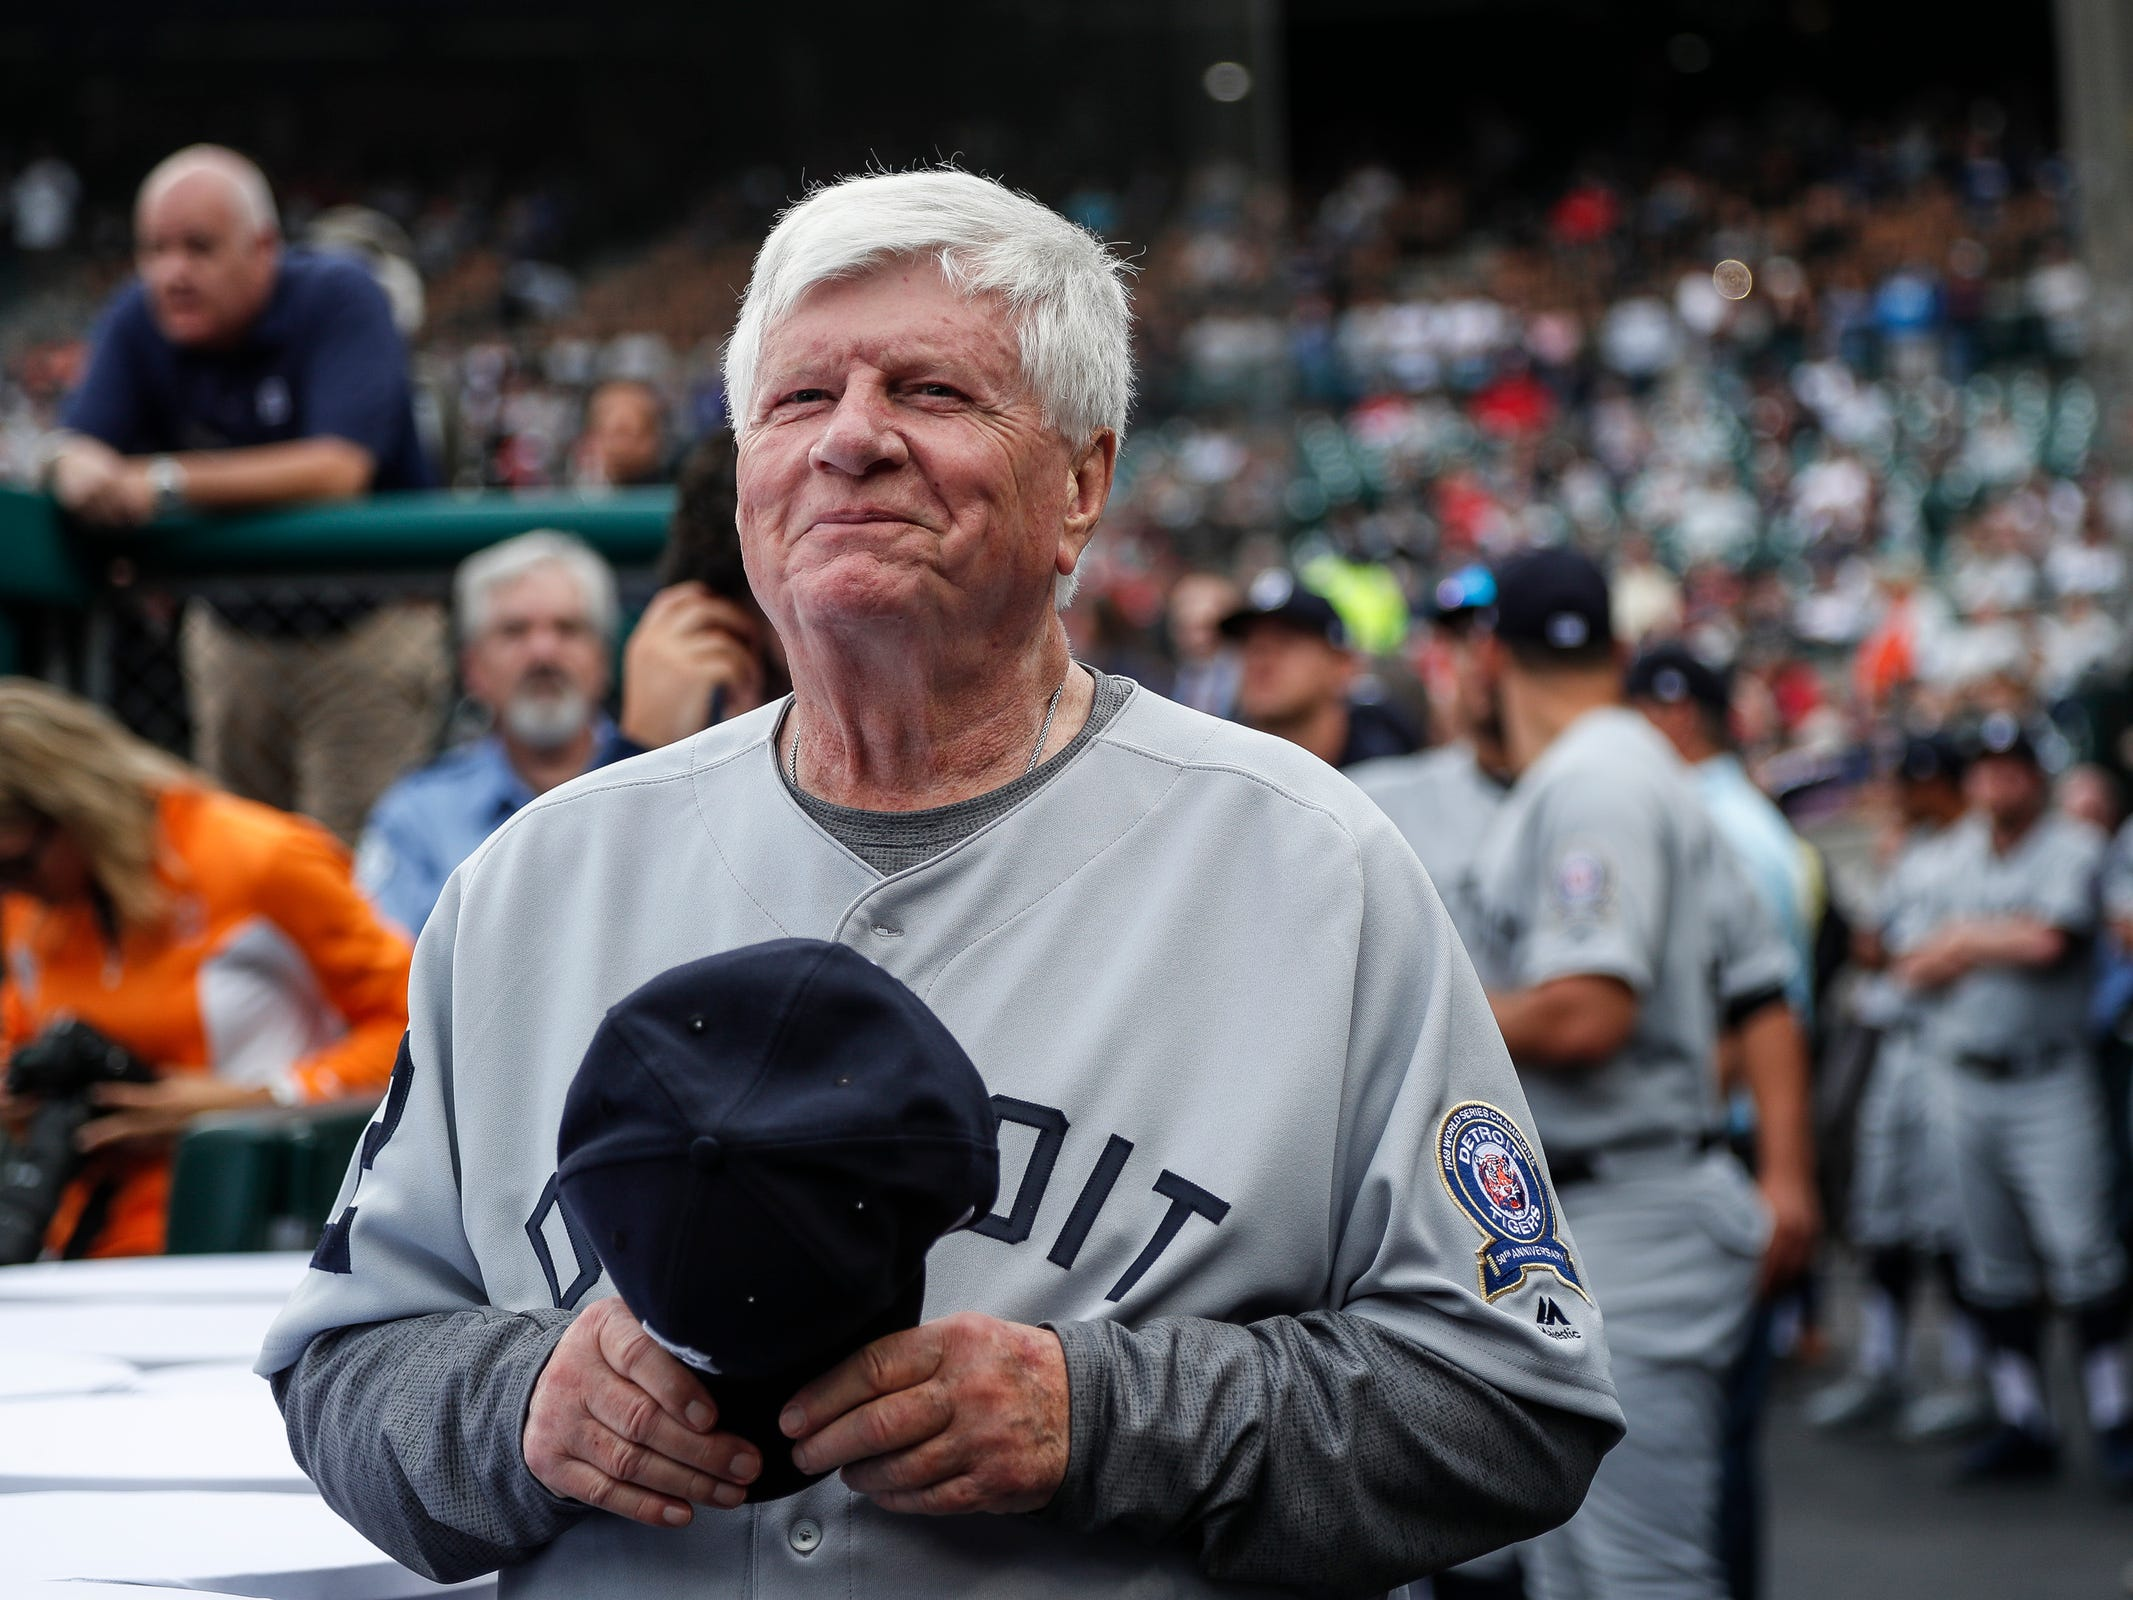 Former Detroit Tigers catcher Jim Price smiles as he watches highlights from the 1968 season on the scoreboard during the celebration of the 50th anniversary of the 1968 World Series championship at Comerica Park in Detroit, Saturday, Sept. 8, 2018.